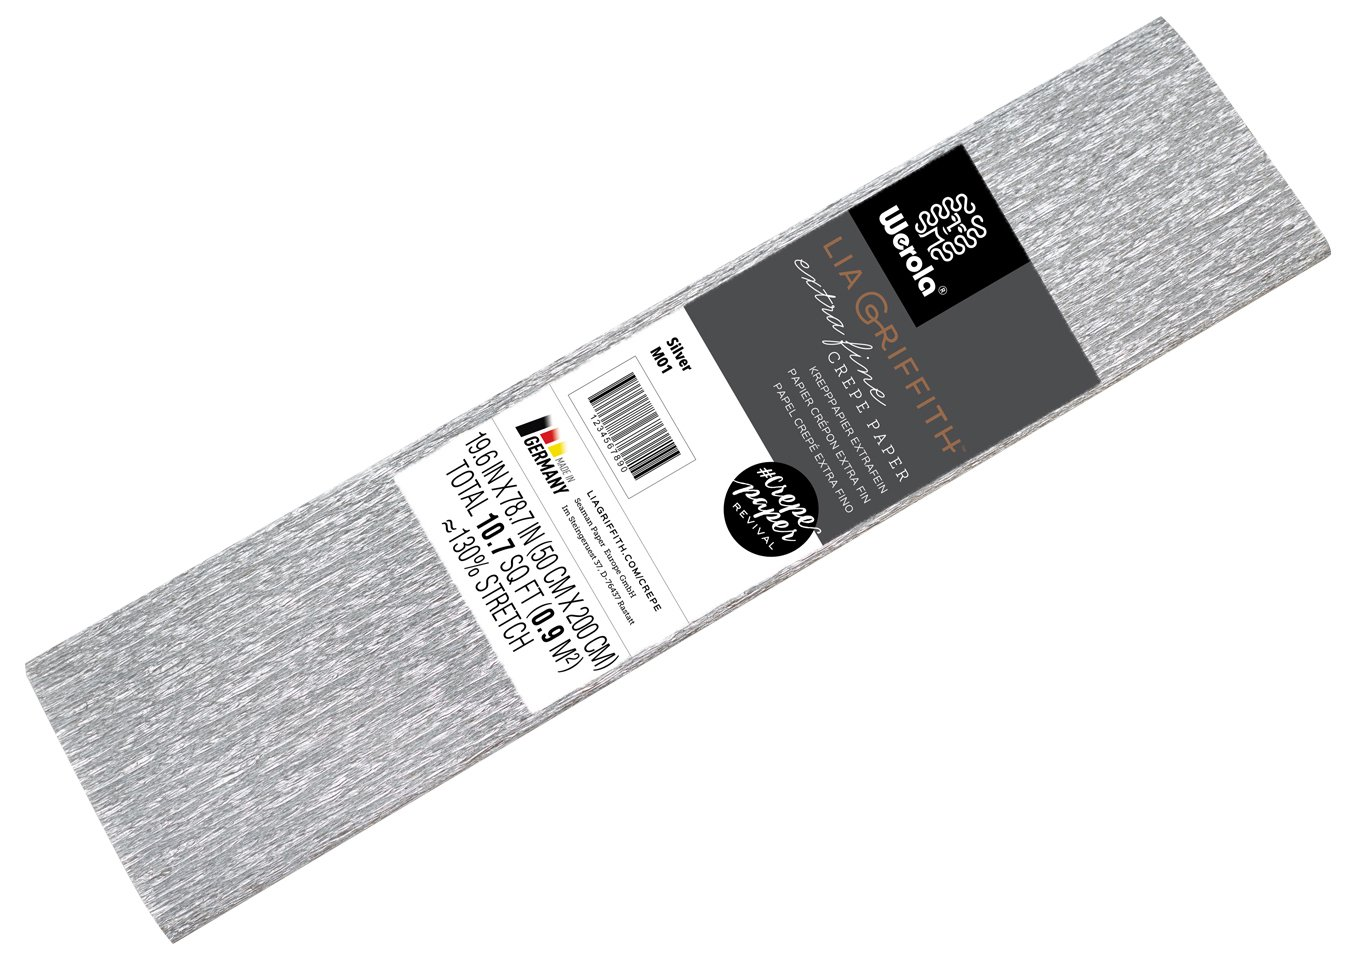 Lia Griffith Metallic Crepe Paper Roll, 10.7-Square Feet, Silver (LG11001)